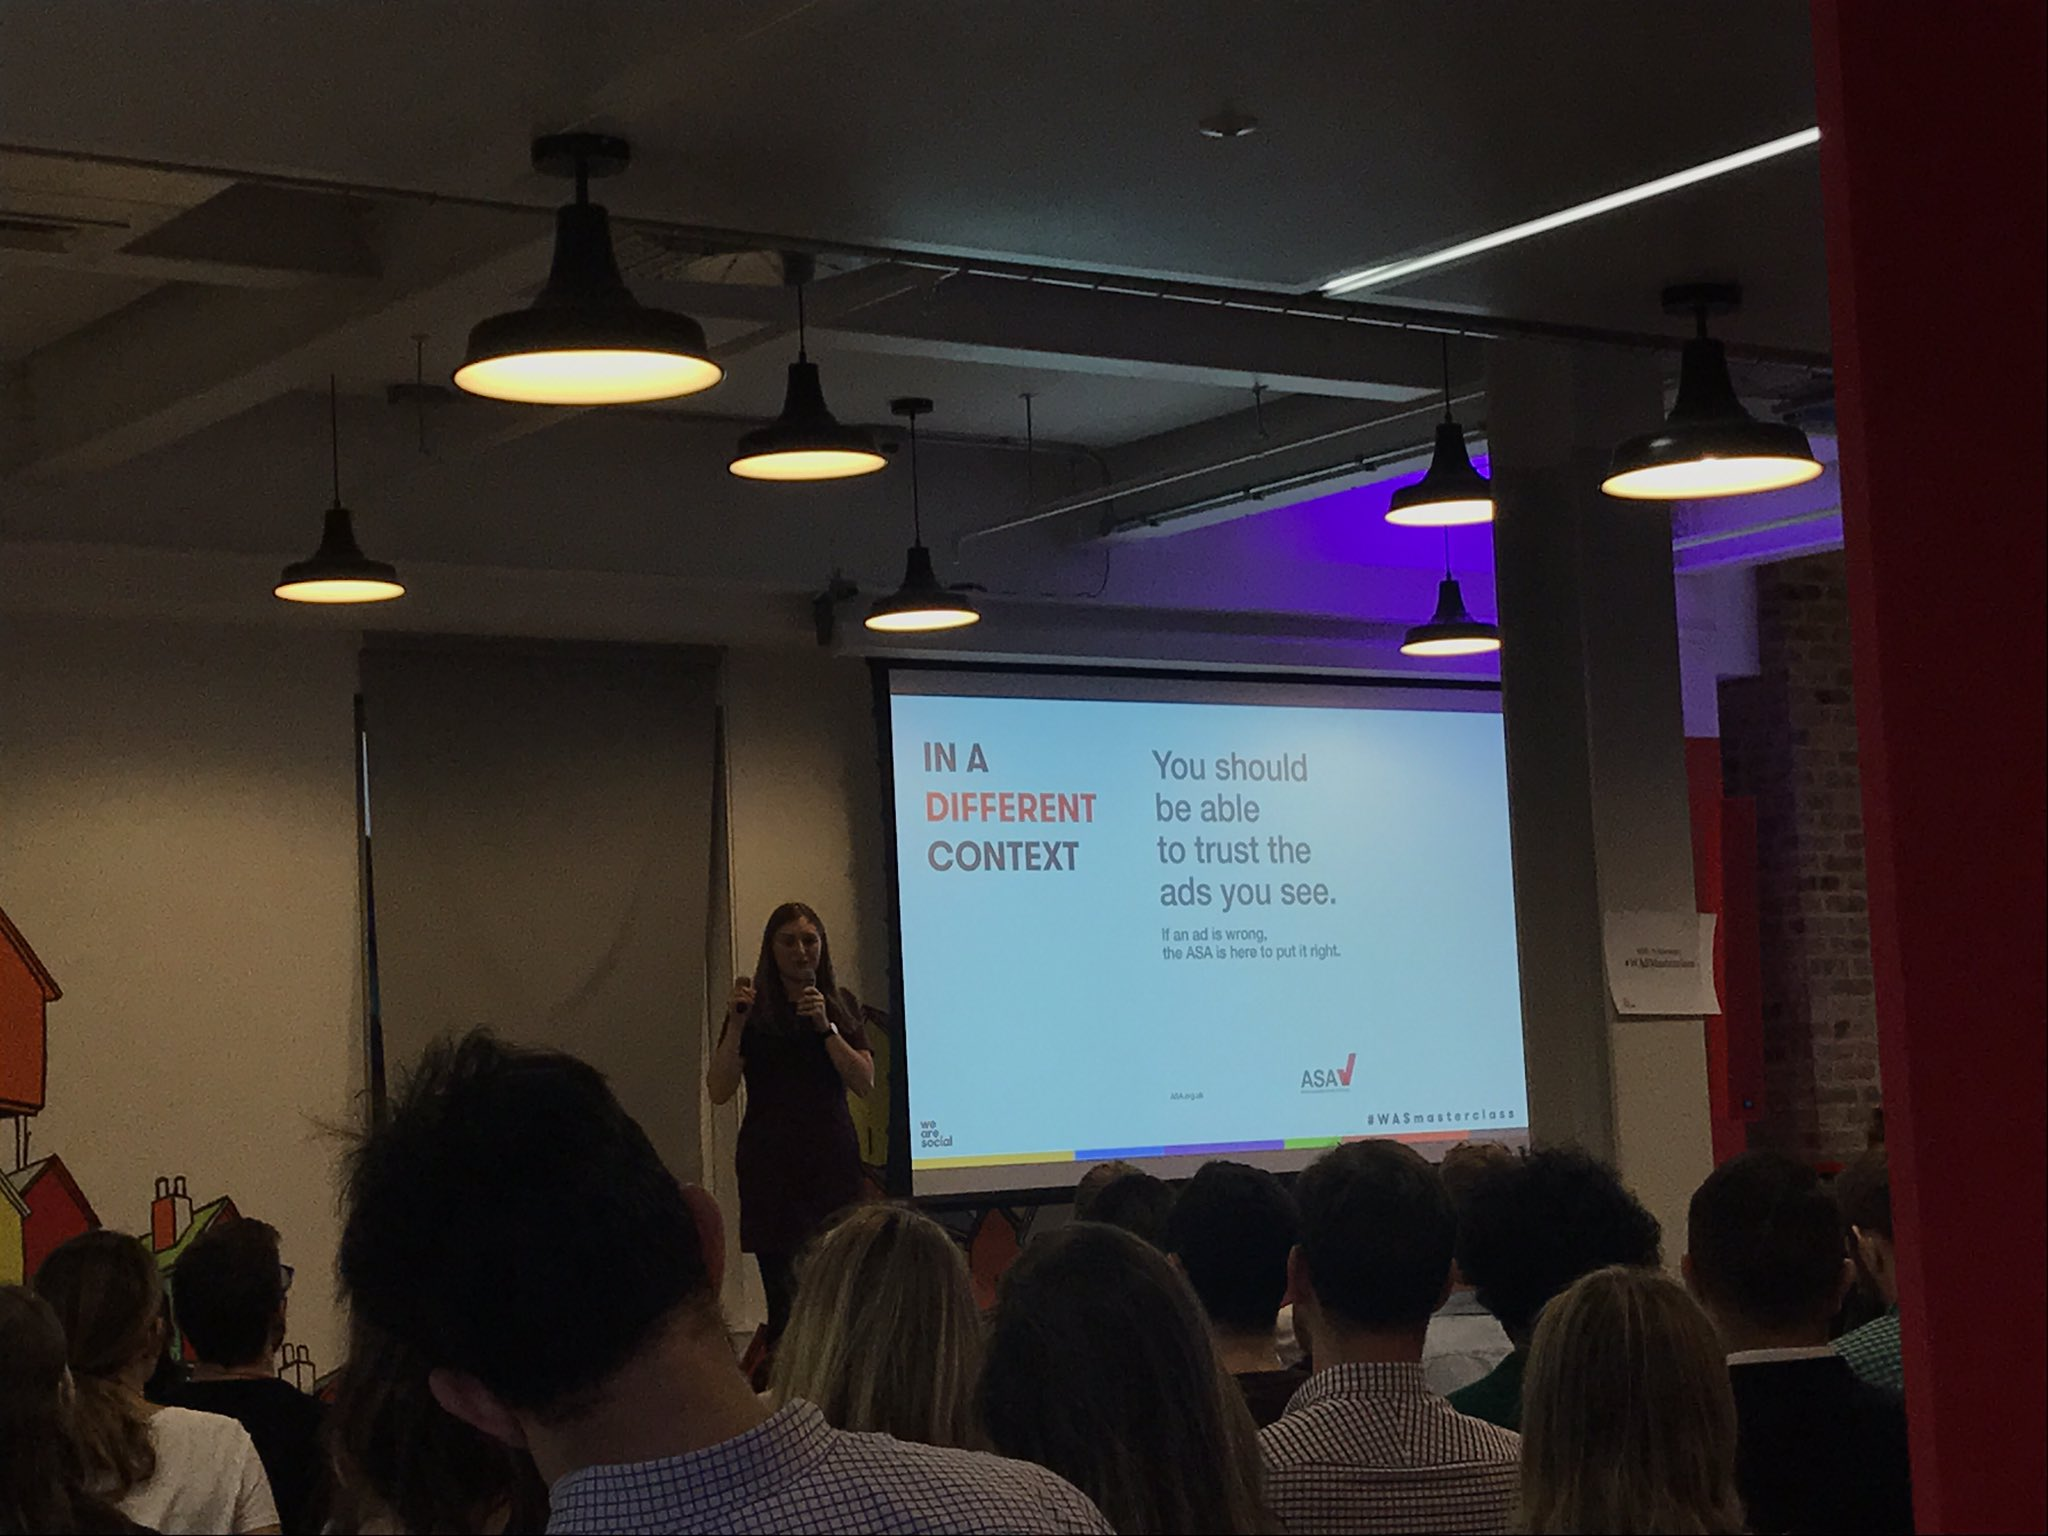 """Work with people who have trusted voices"" @florlujani at #WASMasterclass  @wearesocial #InfluencerMarketing https://t.co/c2a8F0uuIN"